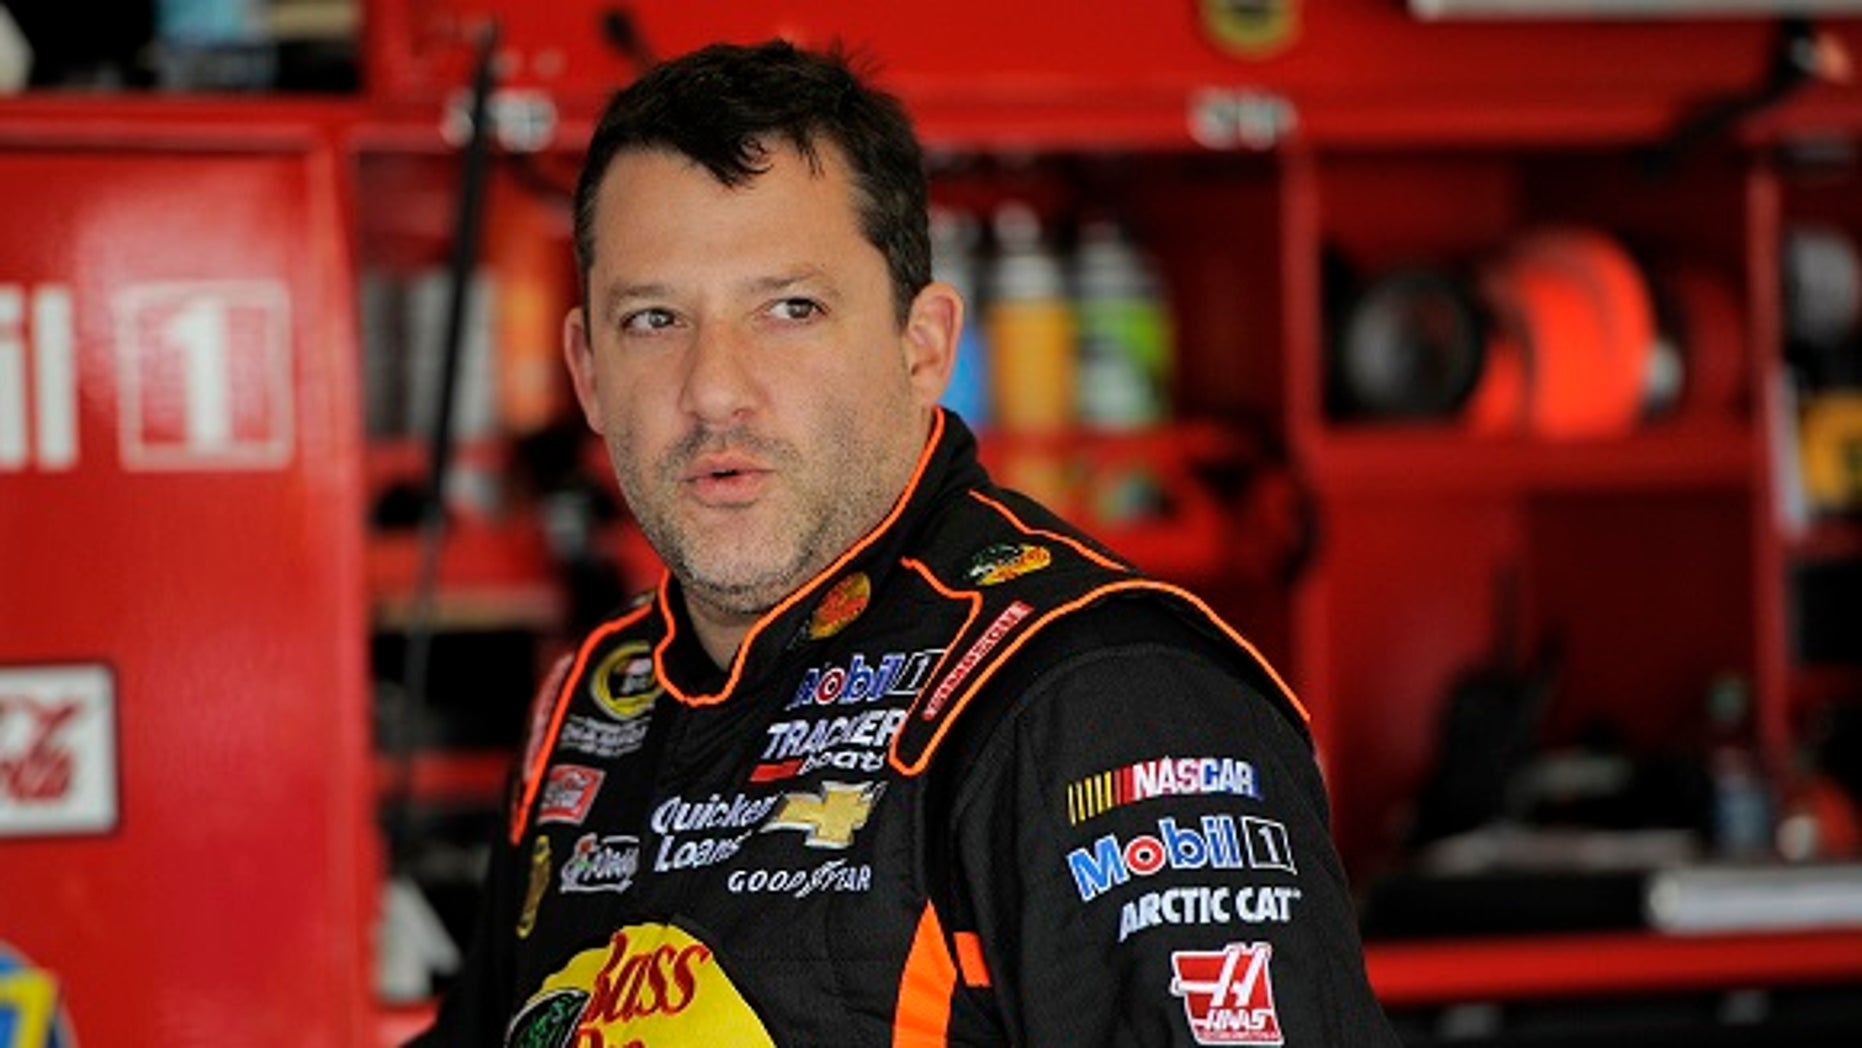 A Florida woman was taken into custody after being accusing of stalking NASCAR star Tony Stewart.